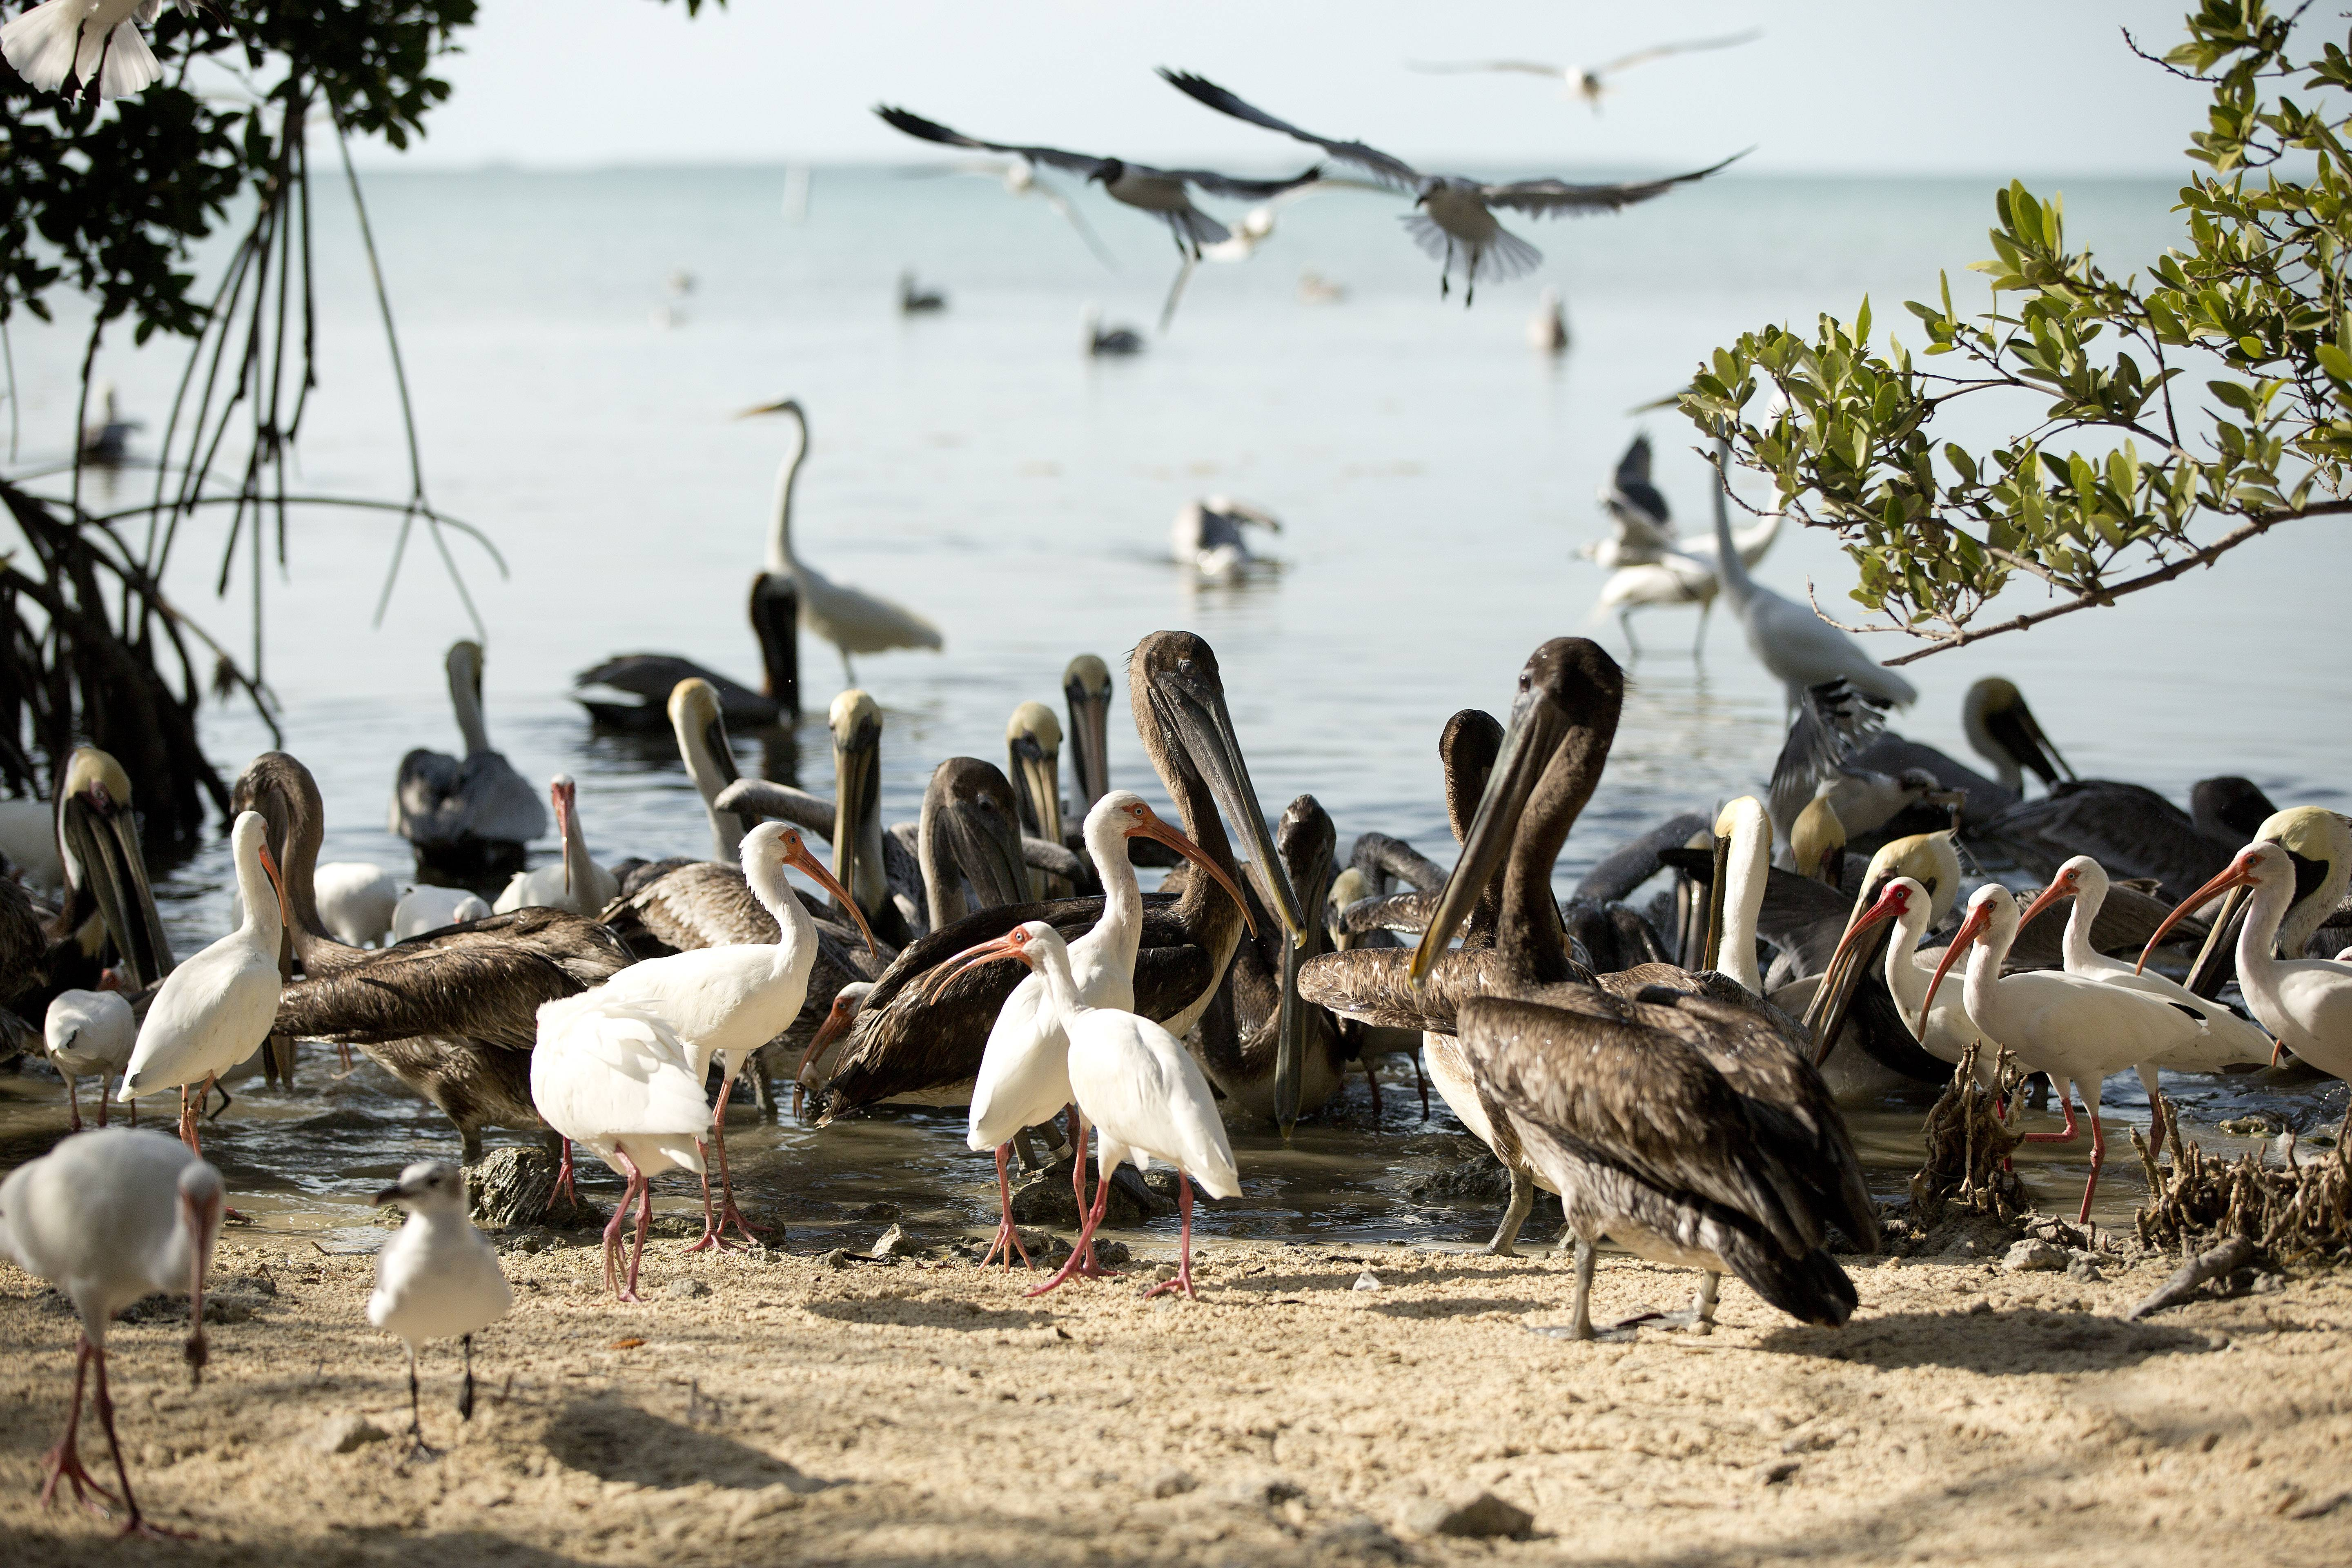 Birds roam the beach at the Florida Keys Wild Bird Center near Key Largo, Fla. The bird sanctuary accepts donations but has free admission.